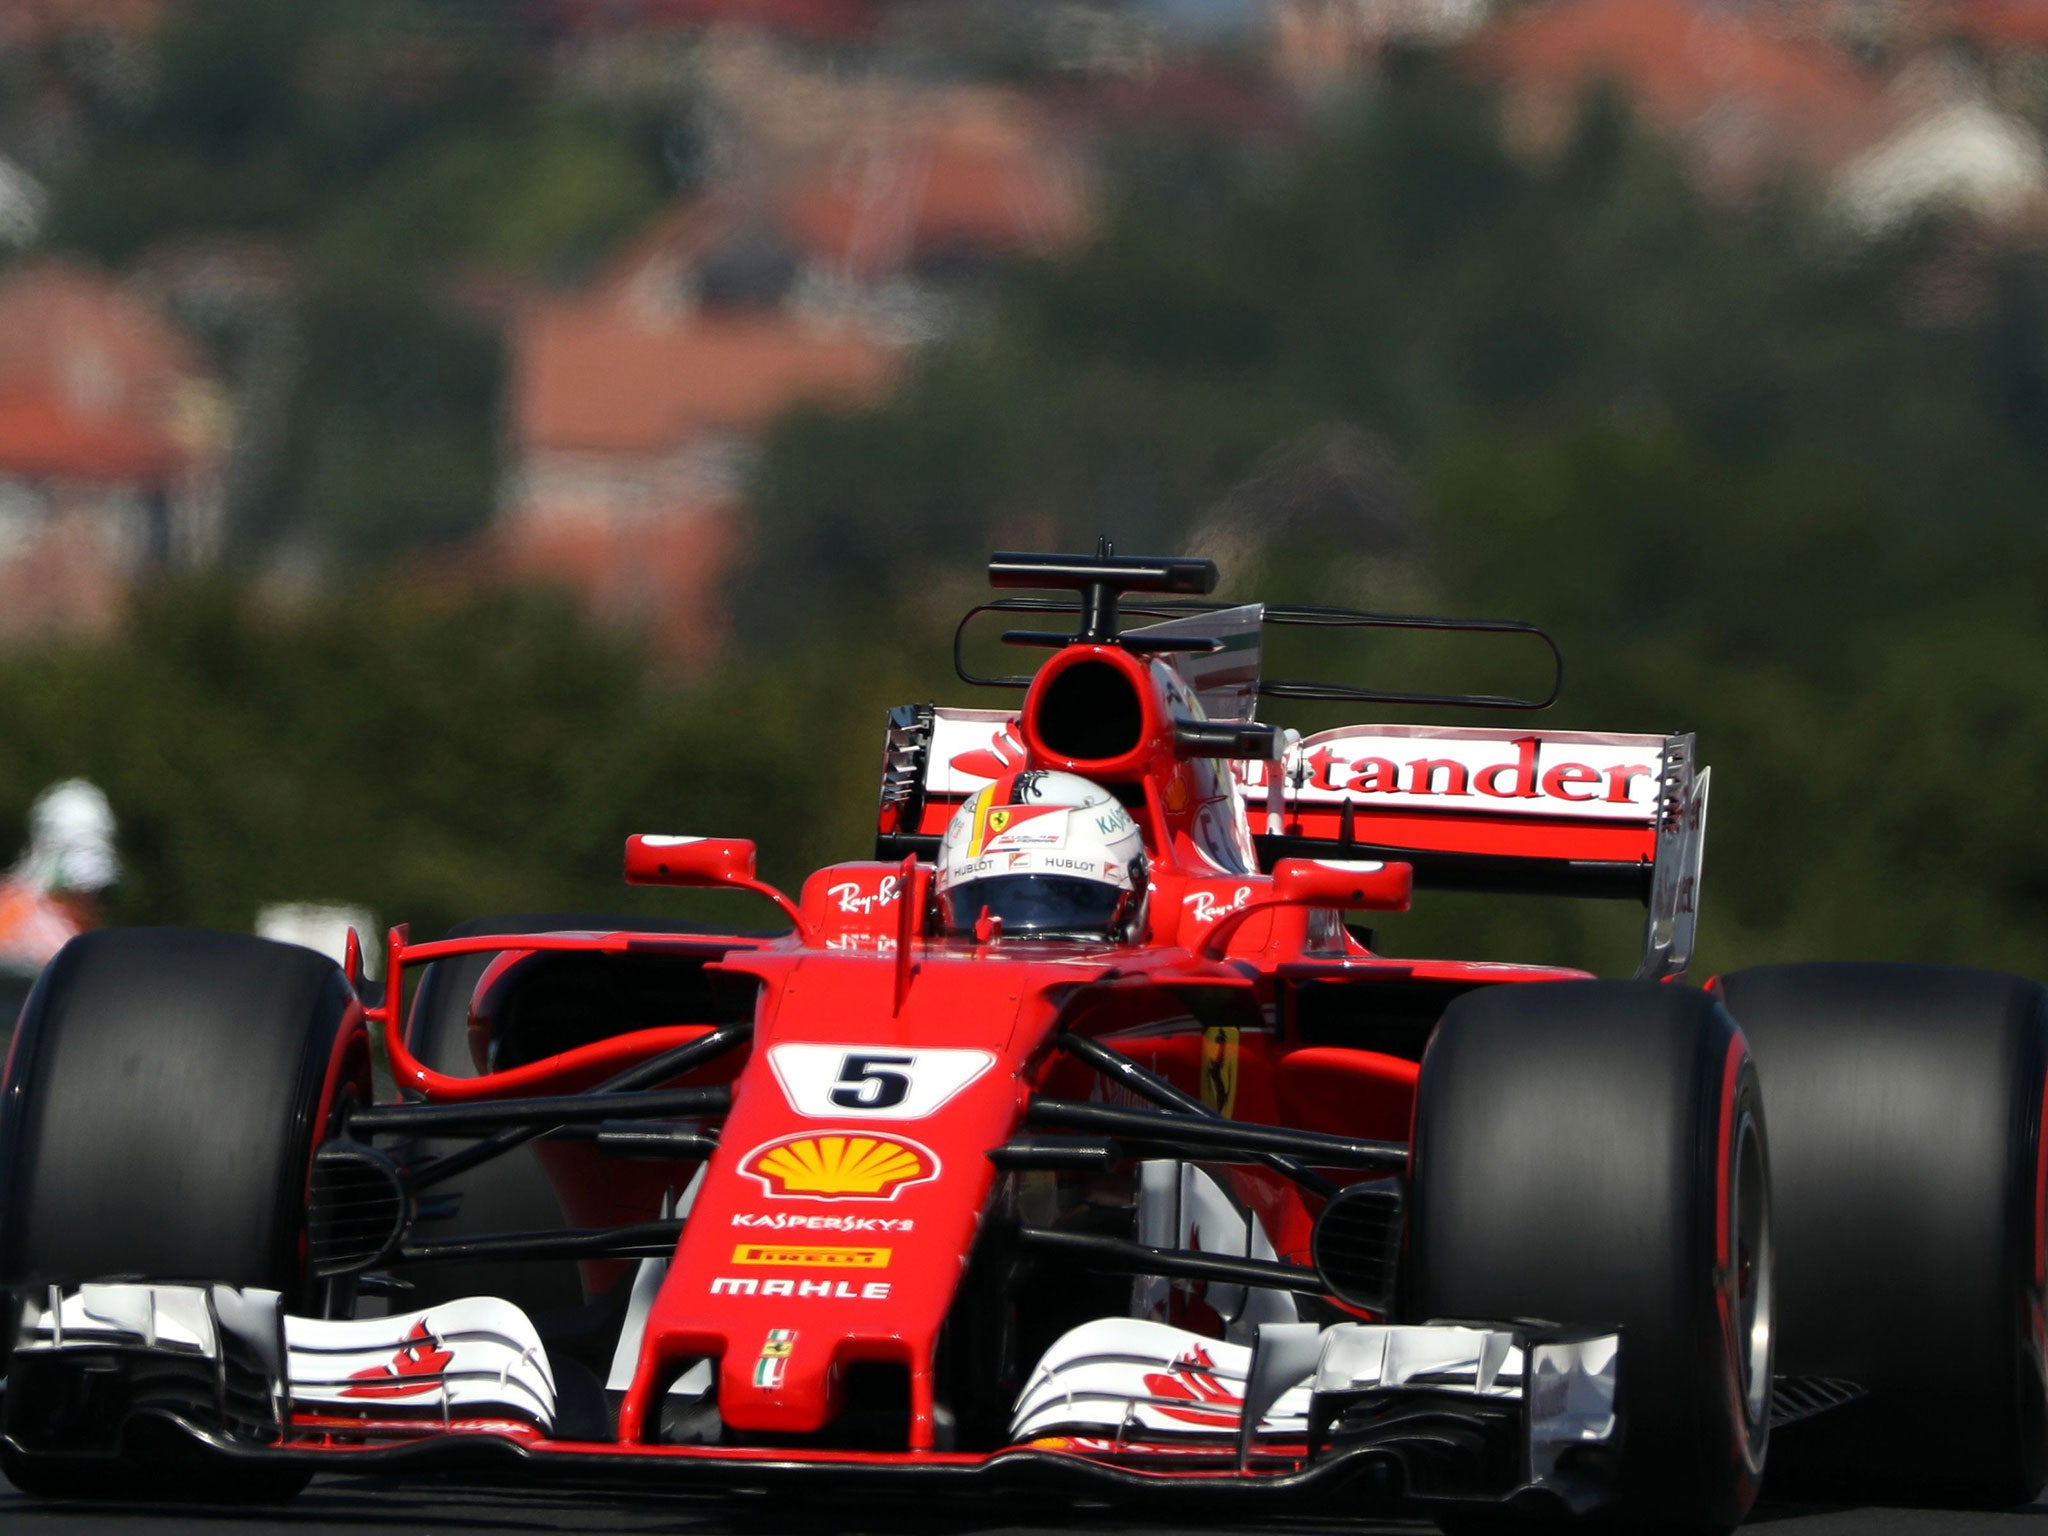 Hungarian grand prix 2017 sebastian vettel leads ferrari front row as lewis hamilton qualifies down in fourth the independent